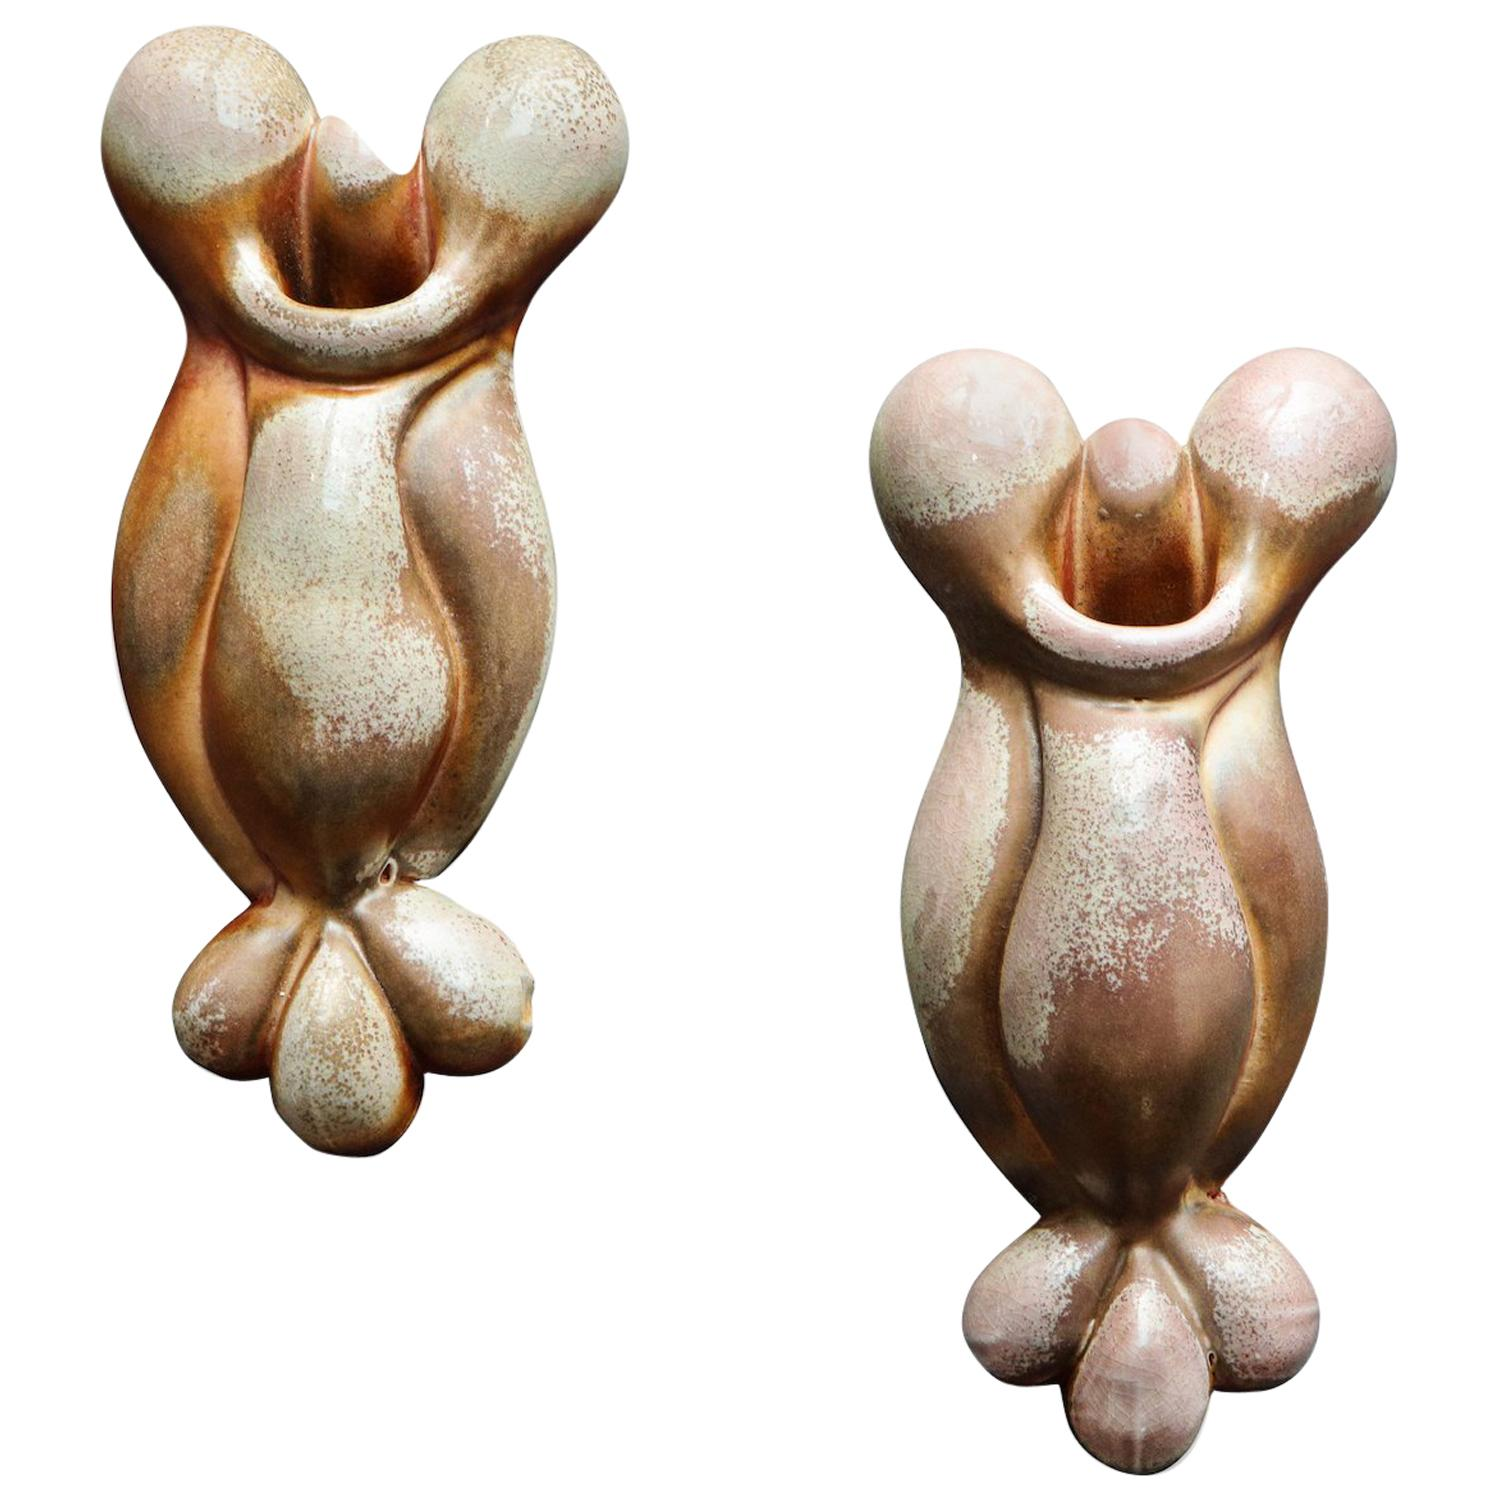 Pair of Wall Hanging Sculptures by Rosanne Sniderman